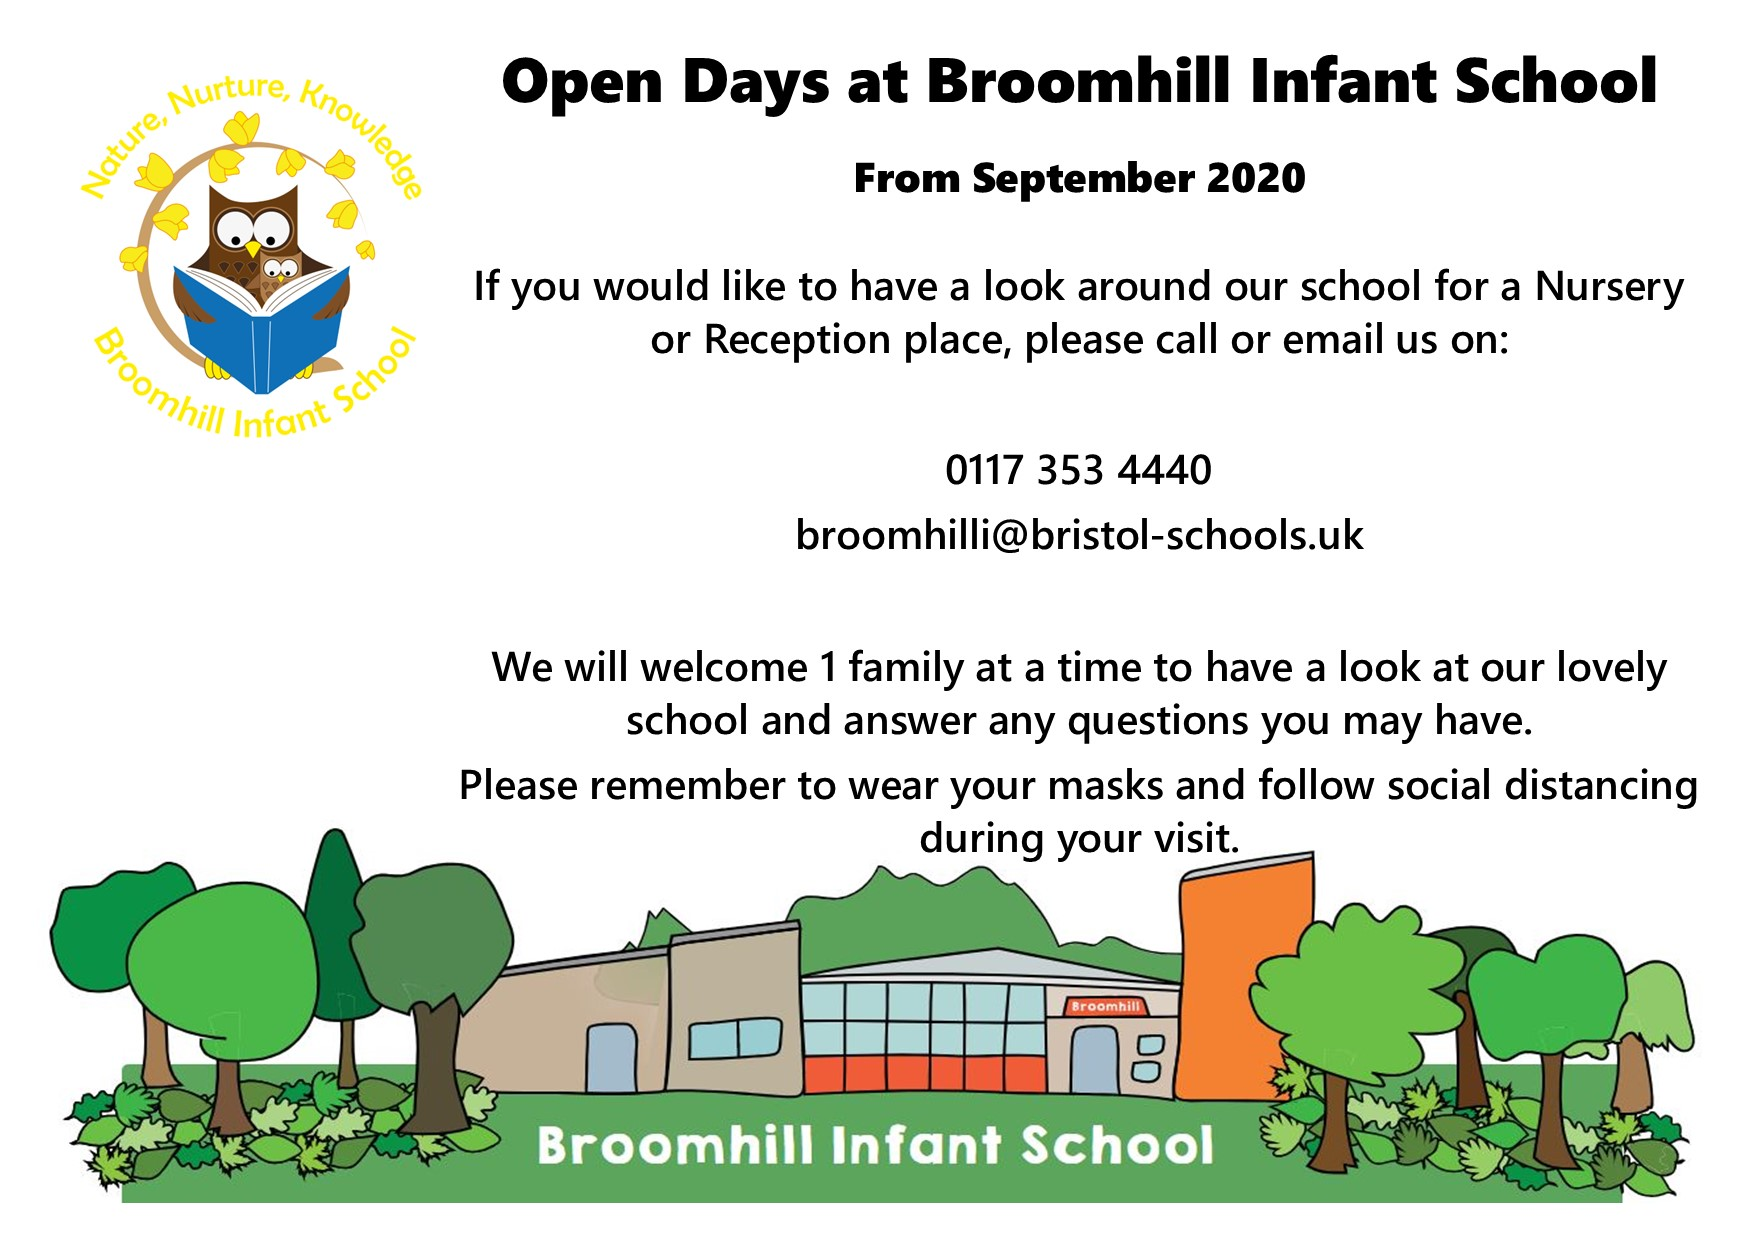 Open Days at Broomhill Infant School